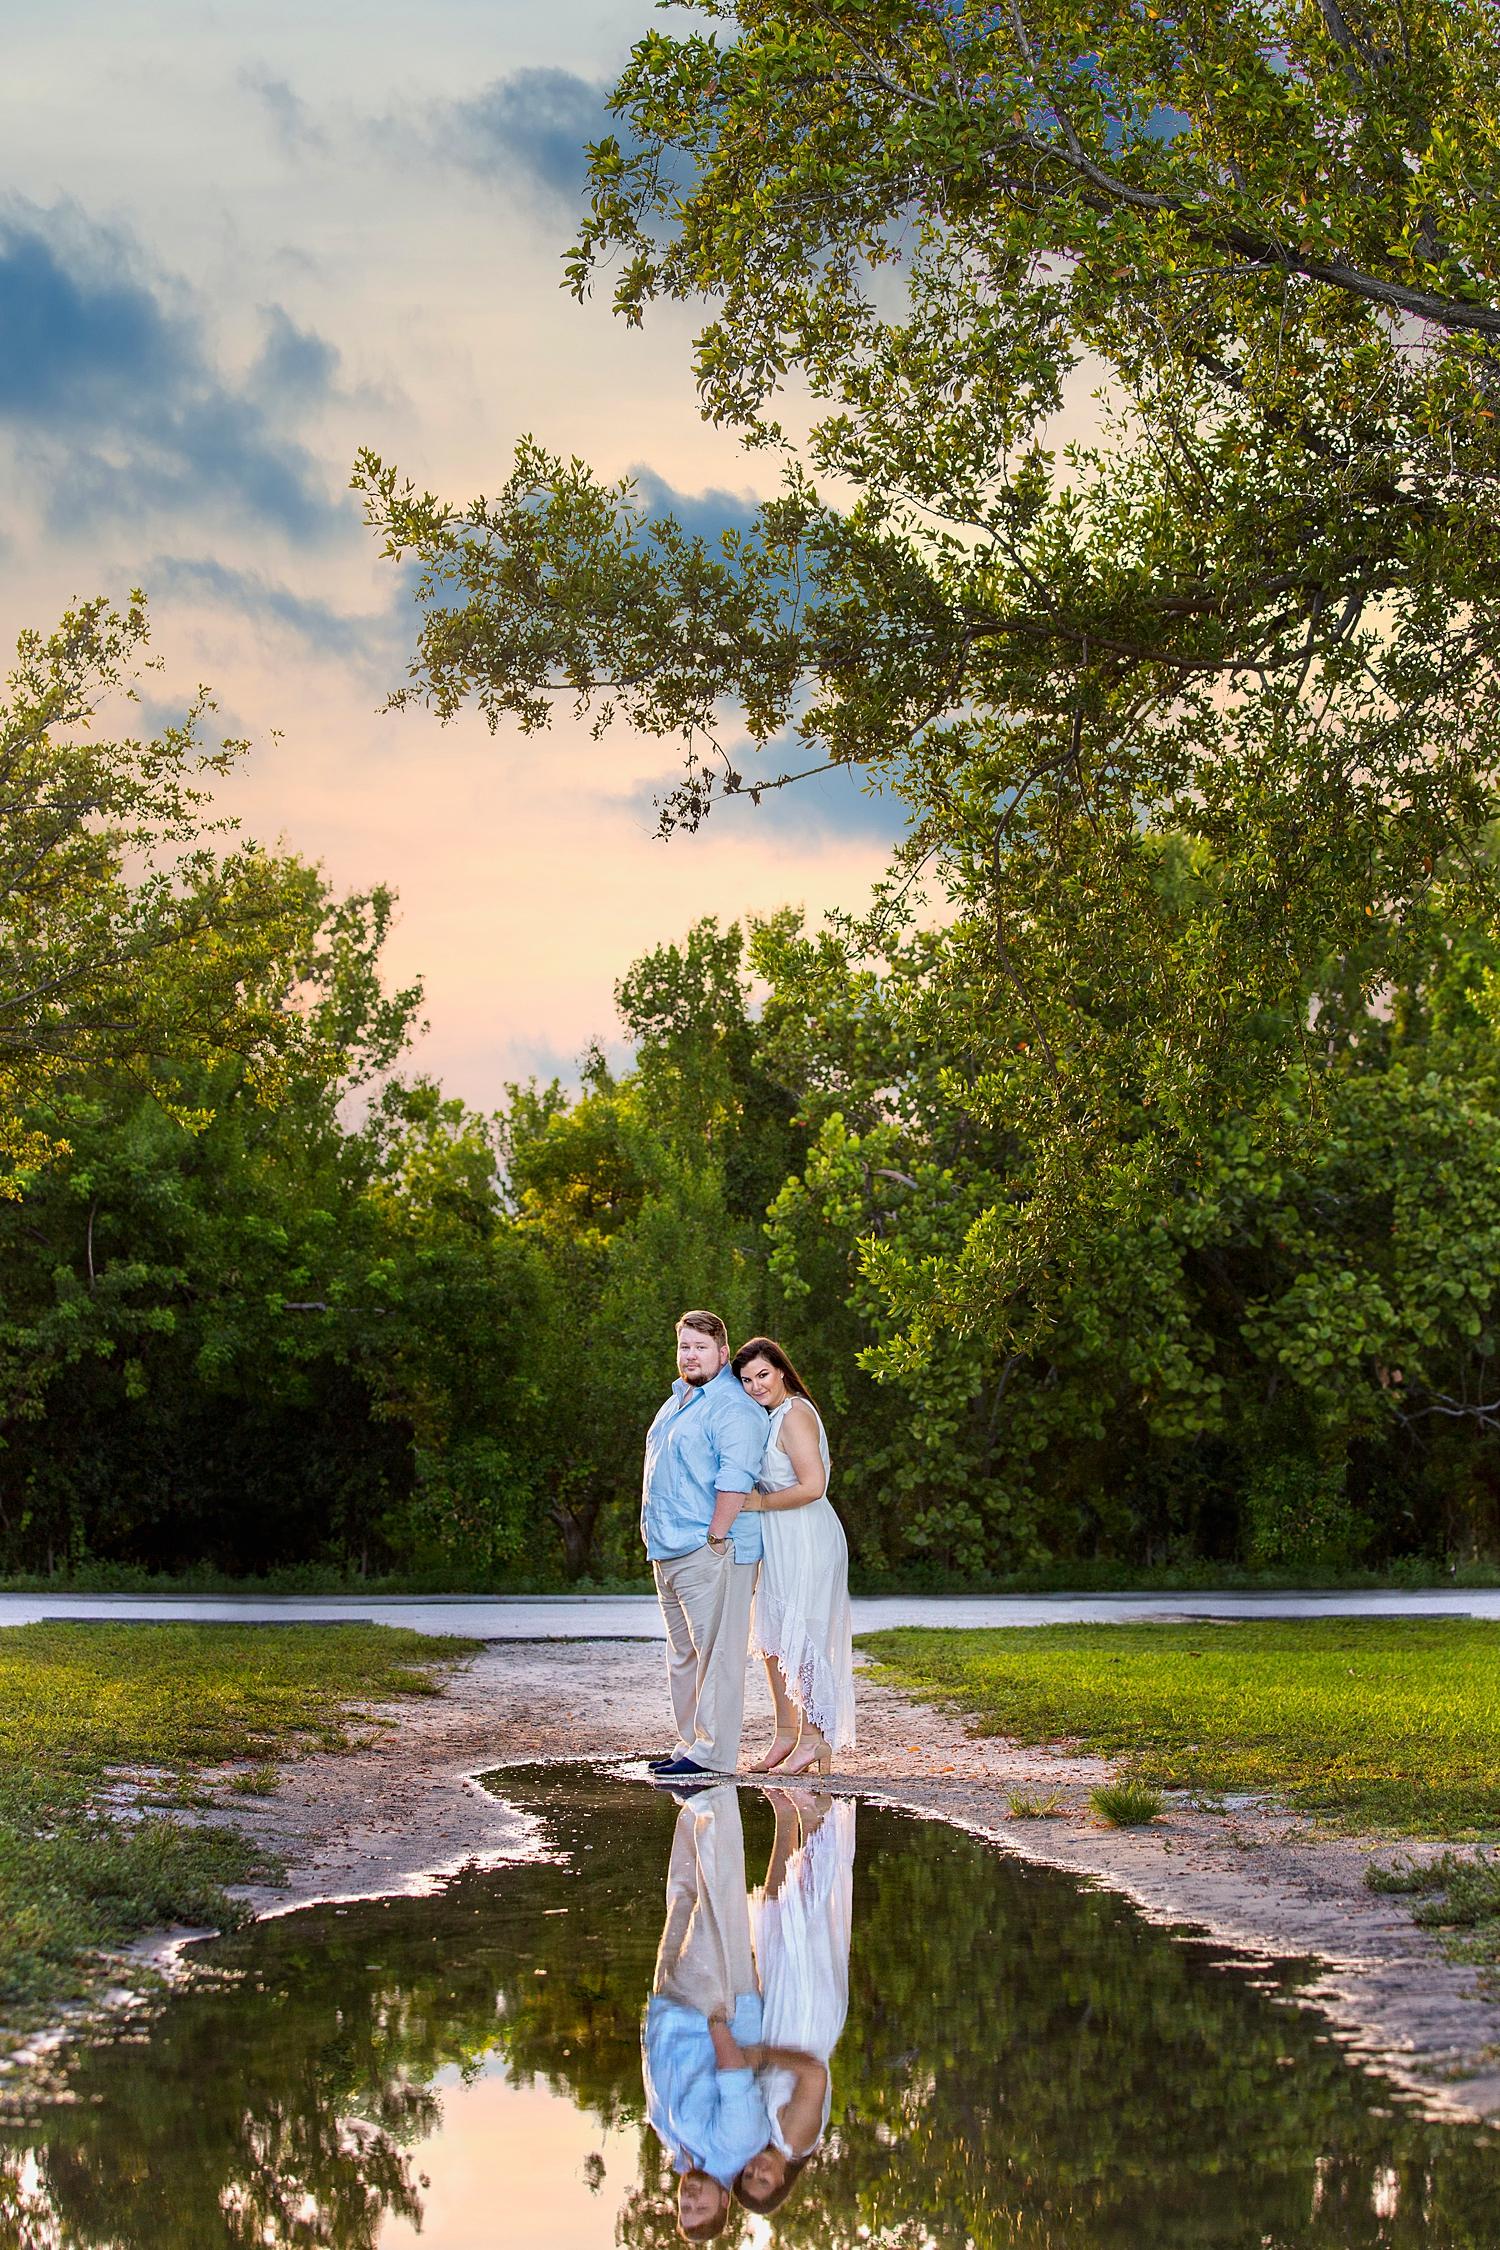 key-biscayne-engagement-photography_0005.jpg